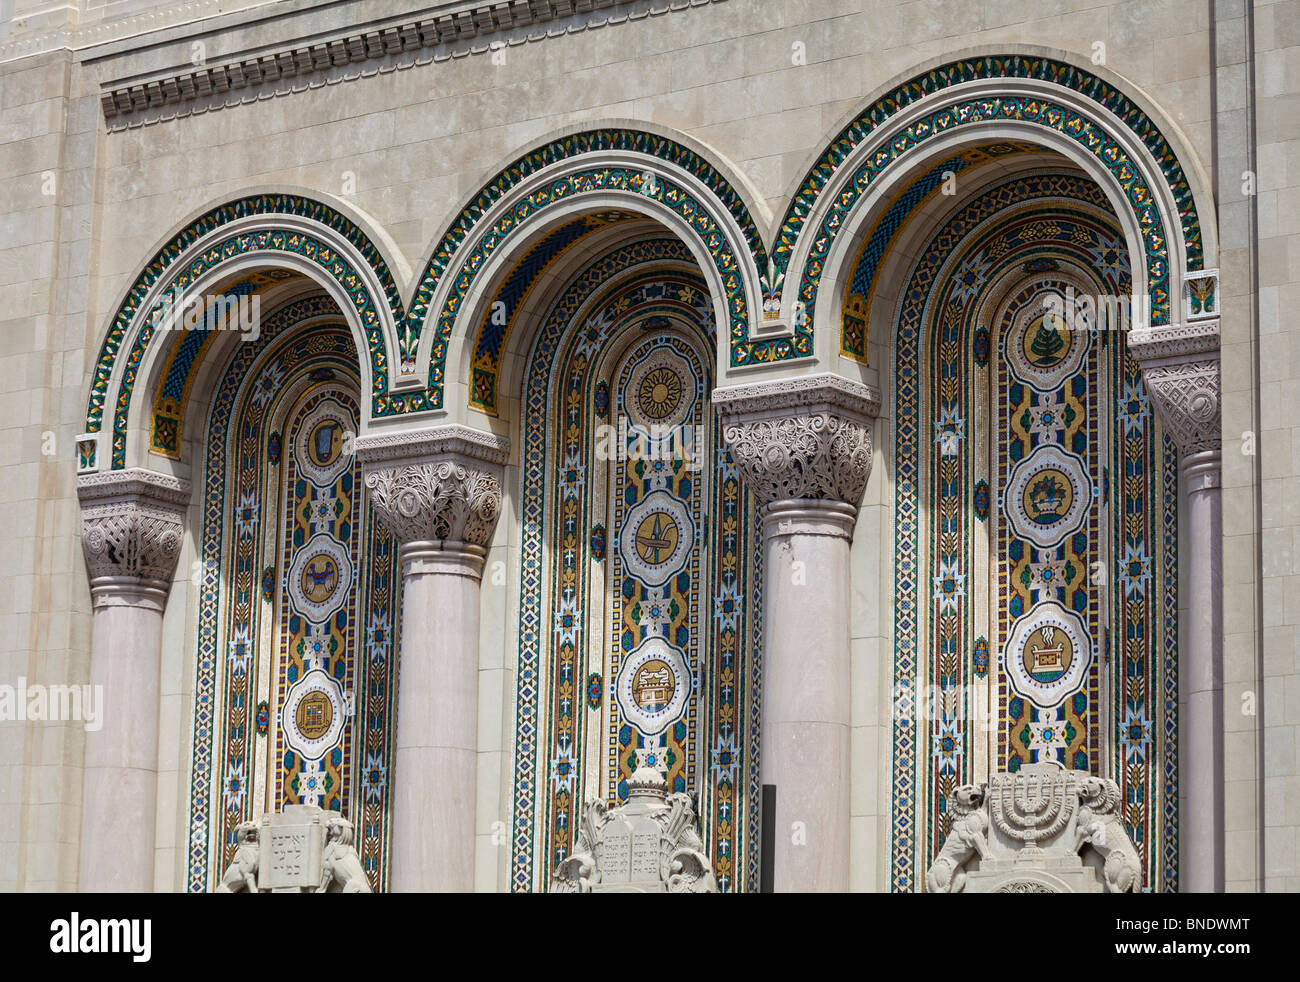 detail of decoration of facade of Rodeph Shalom Synagogue, 607-615 N. Broad St., Philadelphia, Pennsylvania, USA - Stock Image